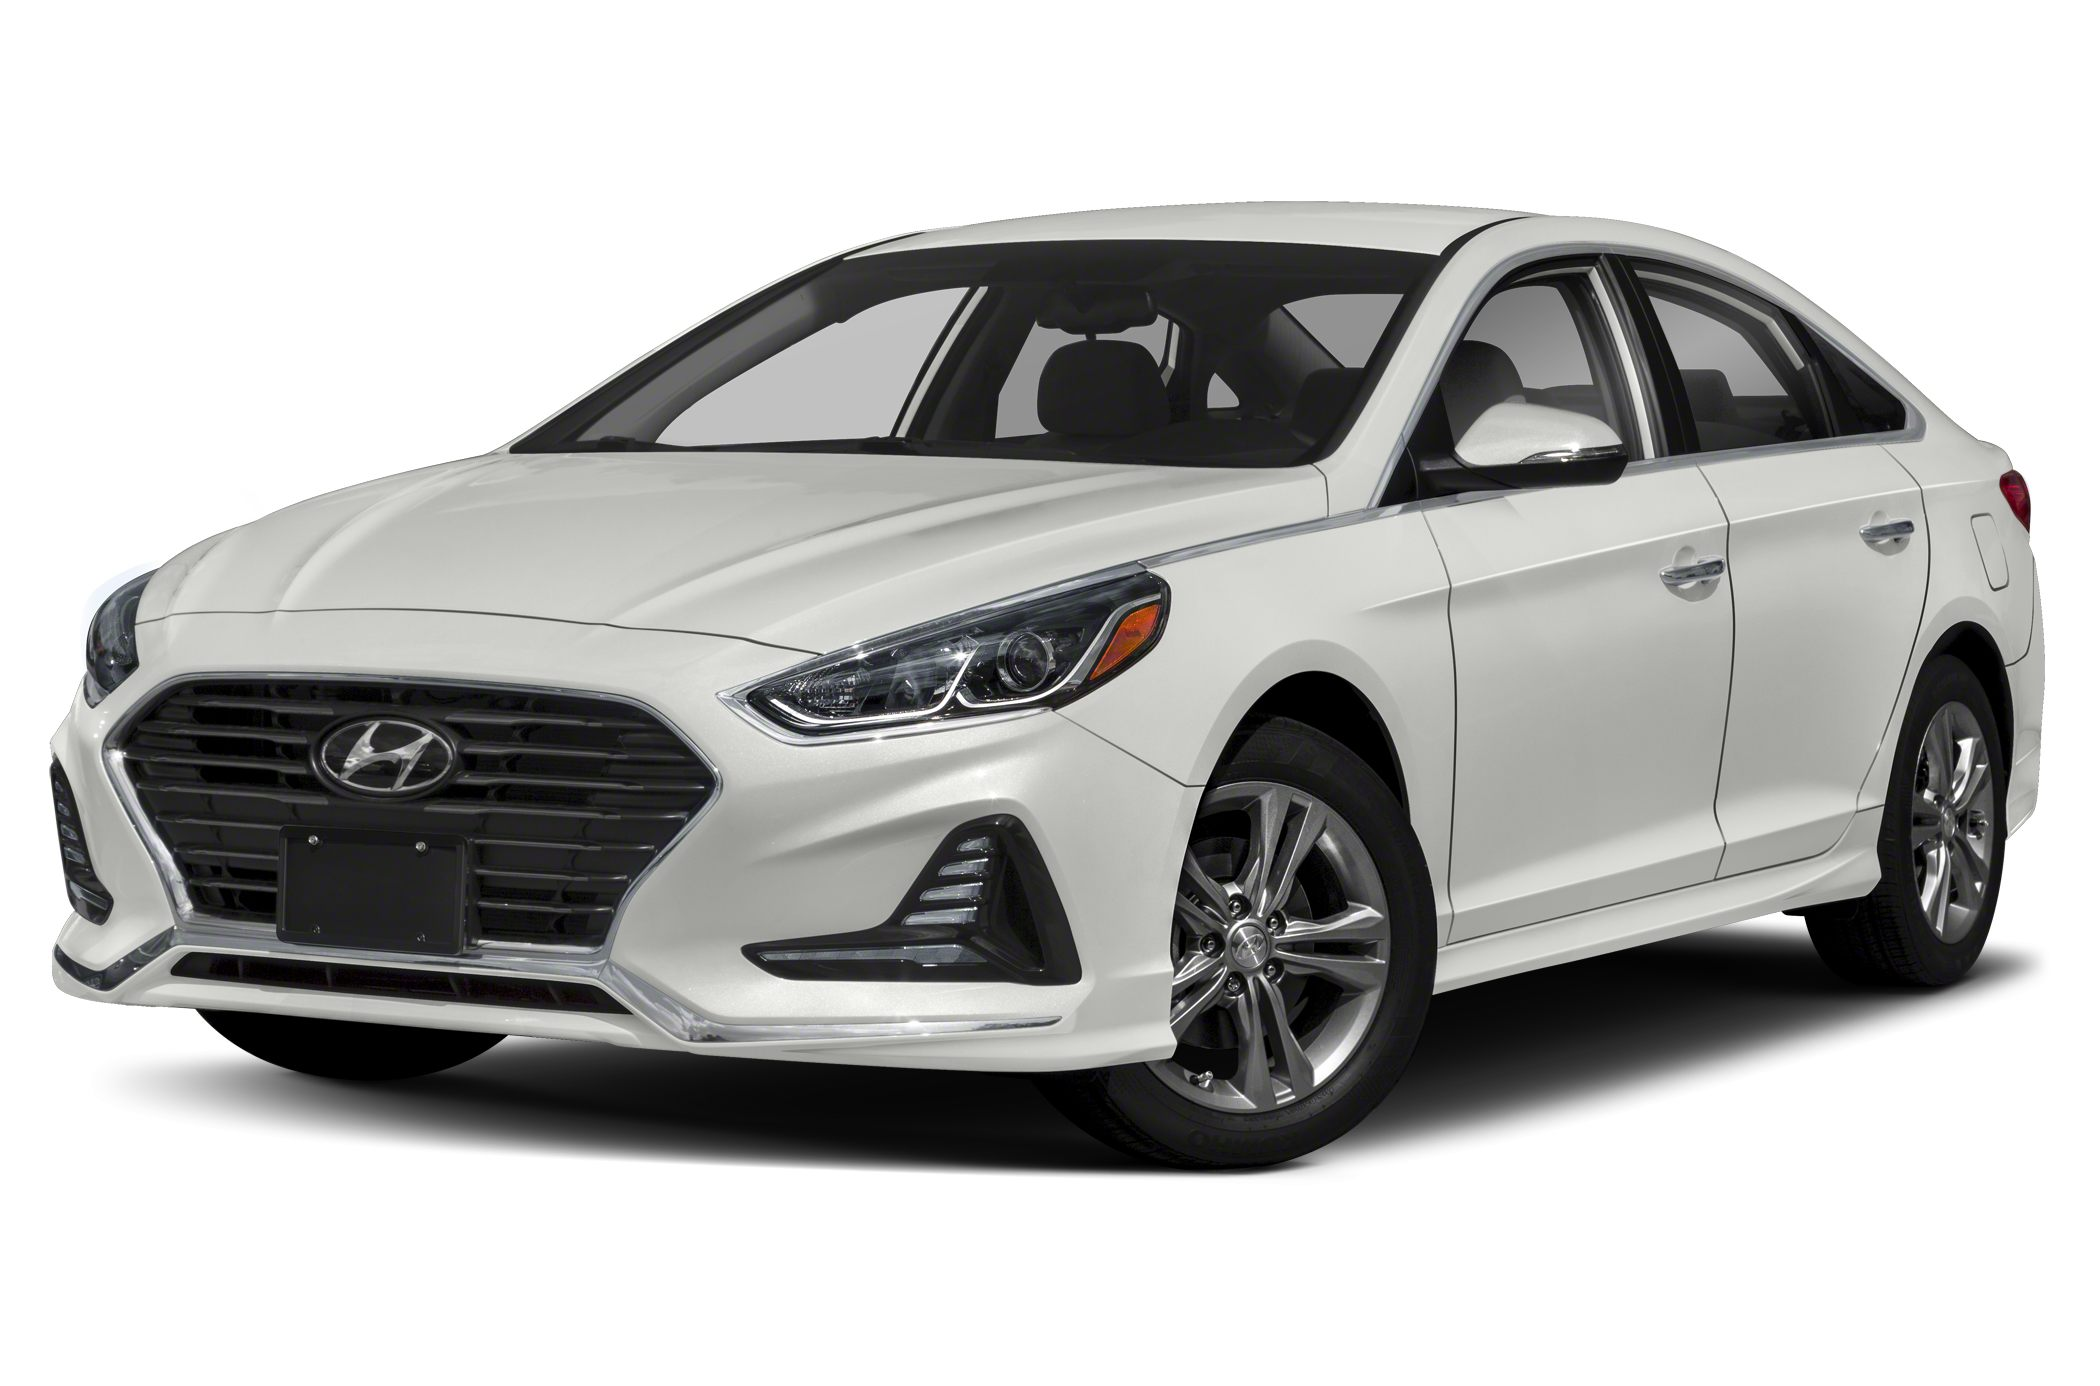 2018 Hyundai Sonata South Korea Spec Photo Gallery Autoblog